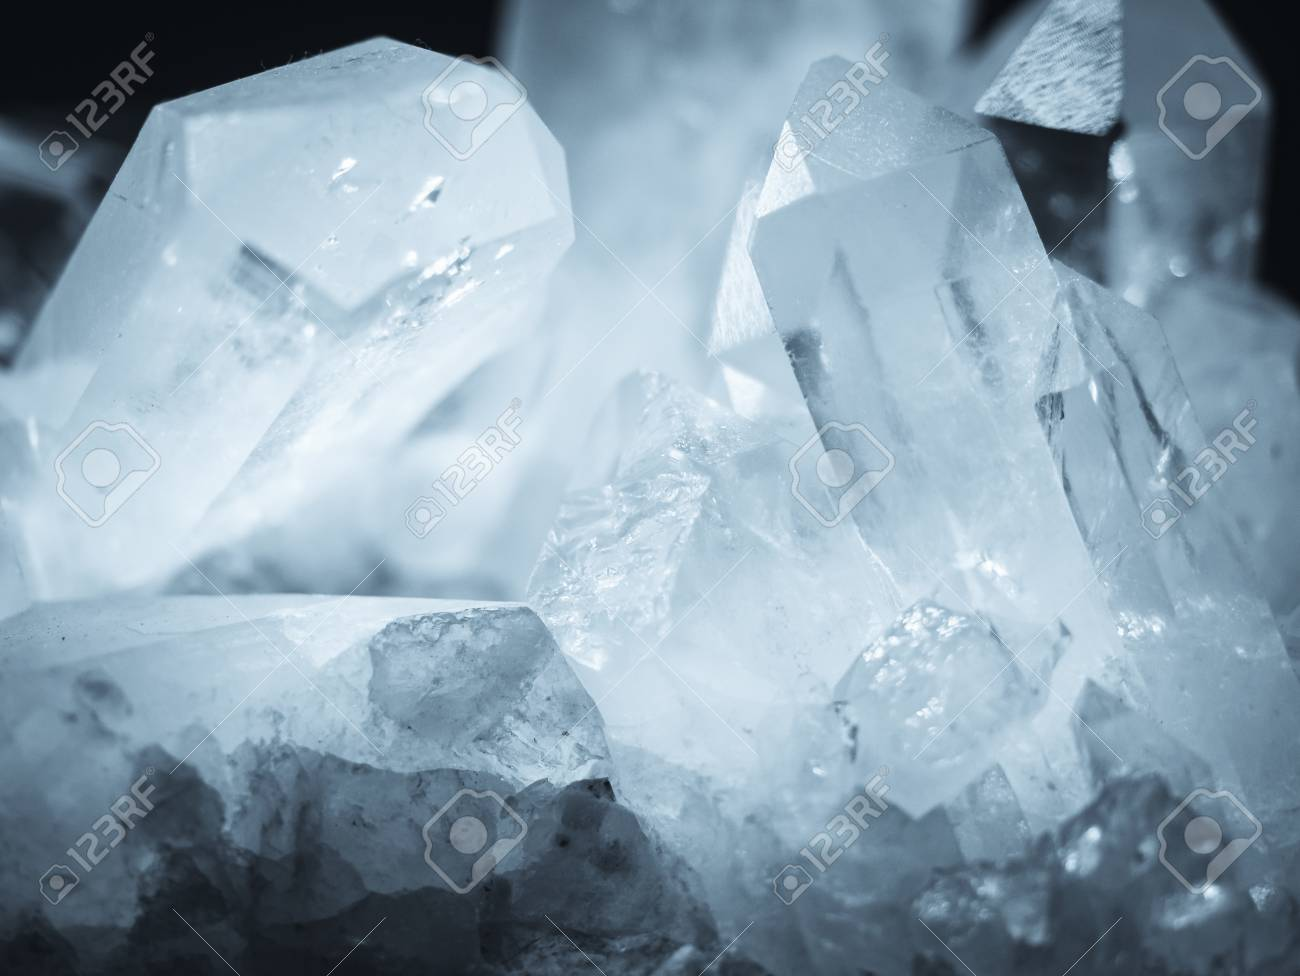 Mineral Crystal Quartz rock white texture Nature abstract background - 115333689